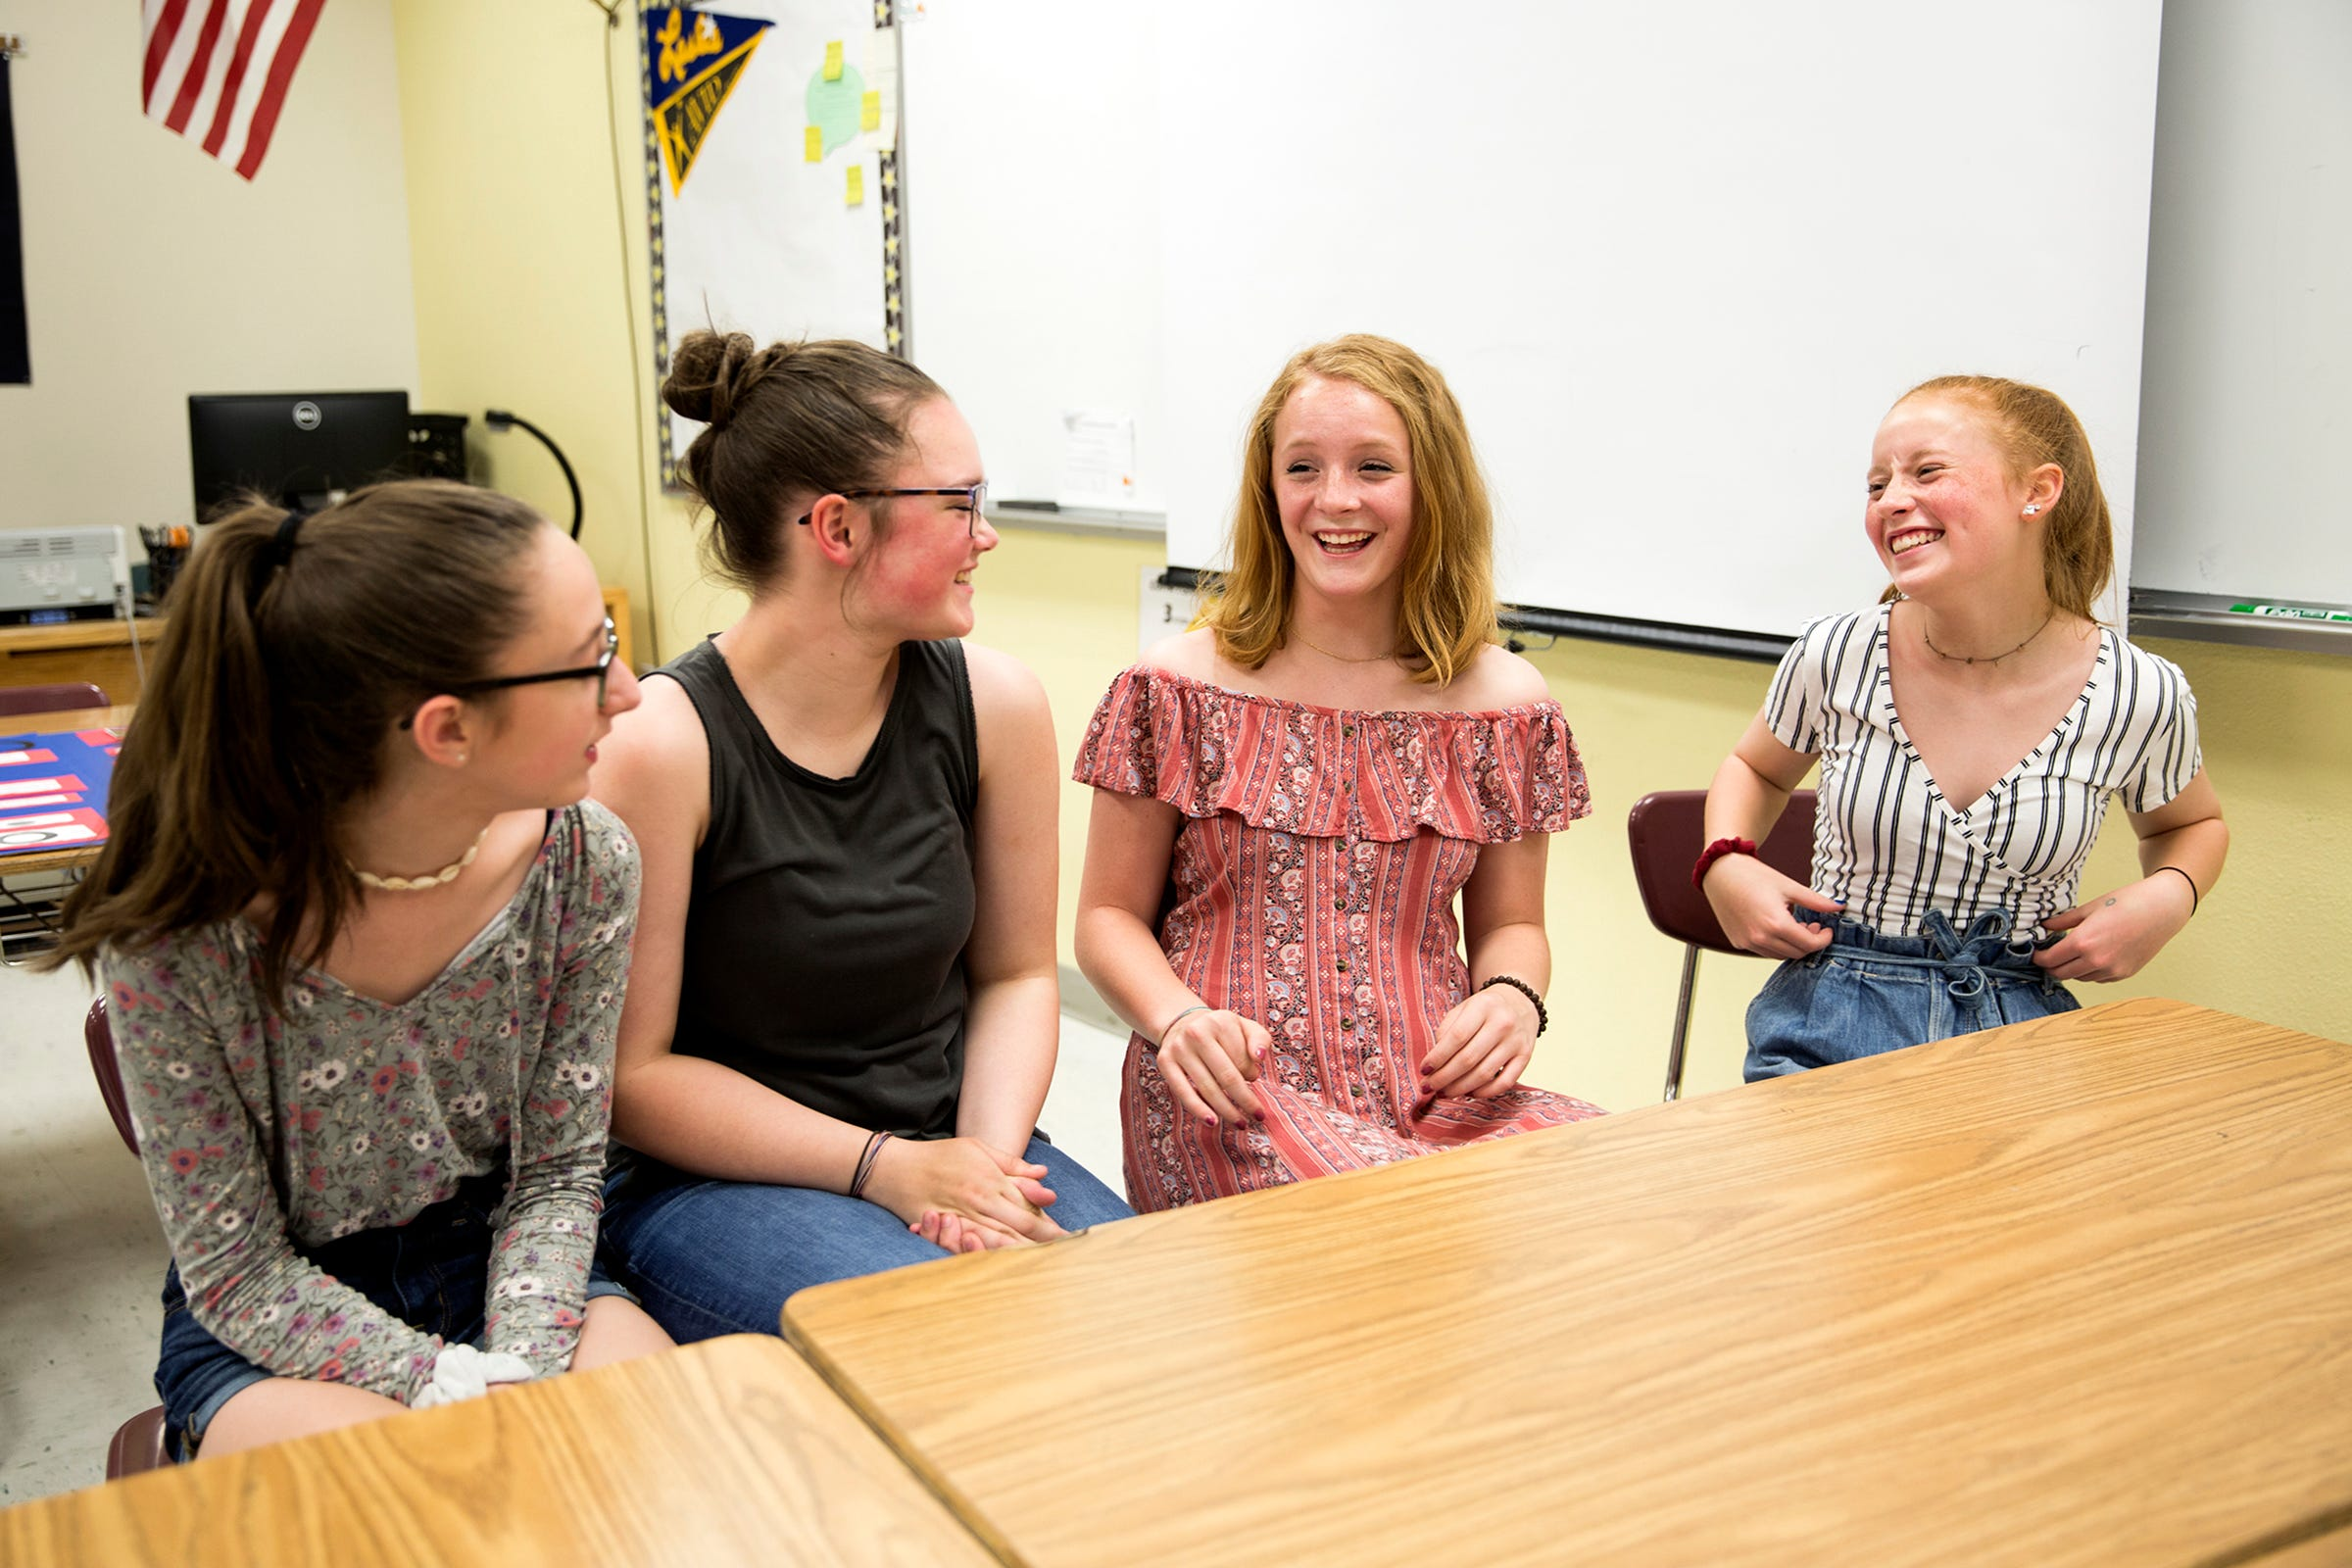 b751dc3709 Salem-Keizer Public Schools to revamp dress code students consider  'archaic' and 'sexist'